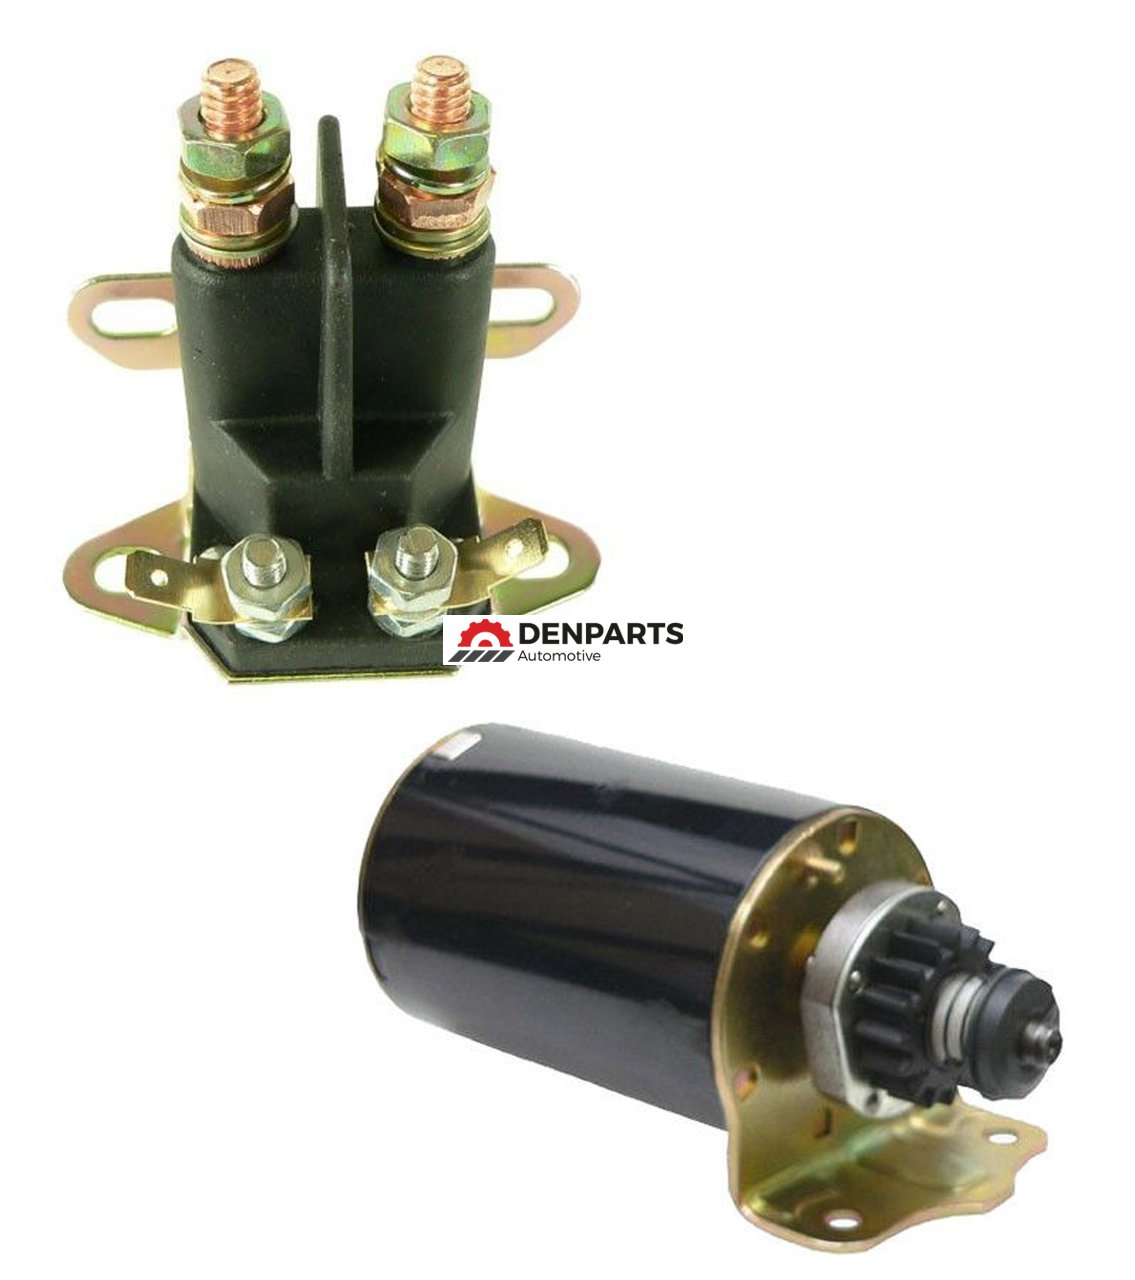 STARTER SOLENOID KIT FOR JOHN DEERE BRIGGS 111 L118 11-18HP  AM106883 AM38136